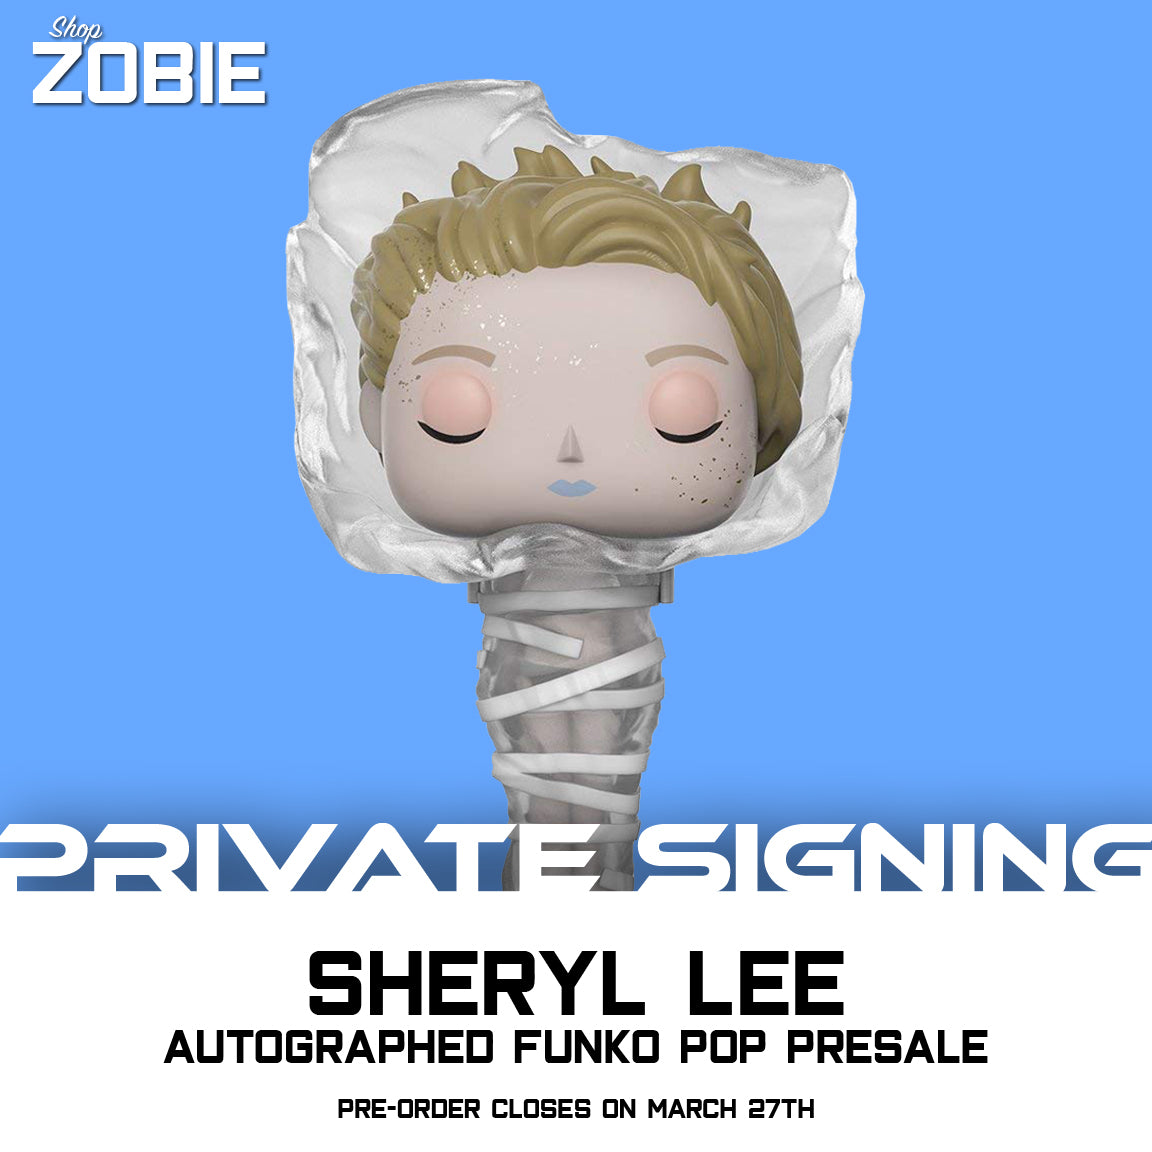 Sheryl Lee Private Signing Autographed Funko Pop Presale